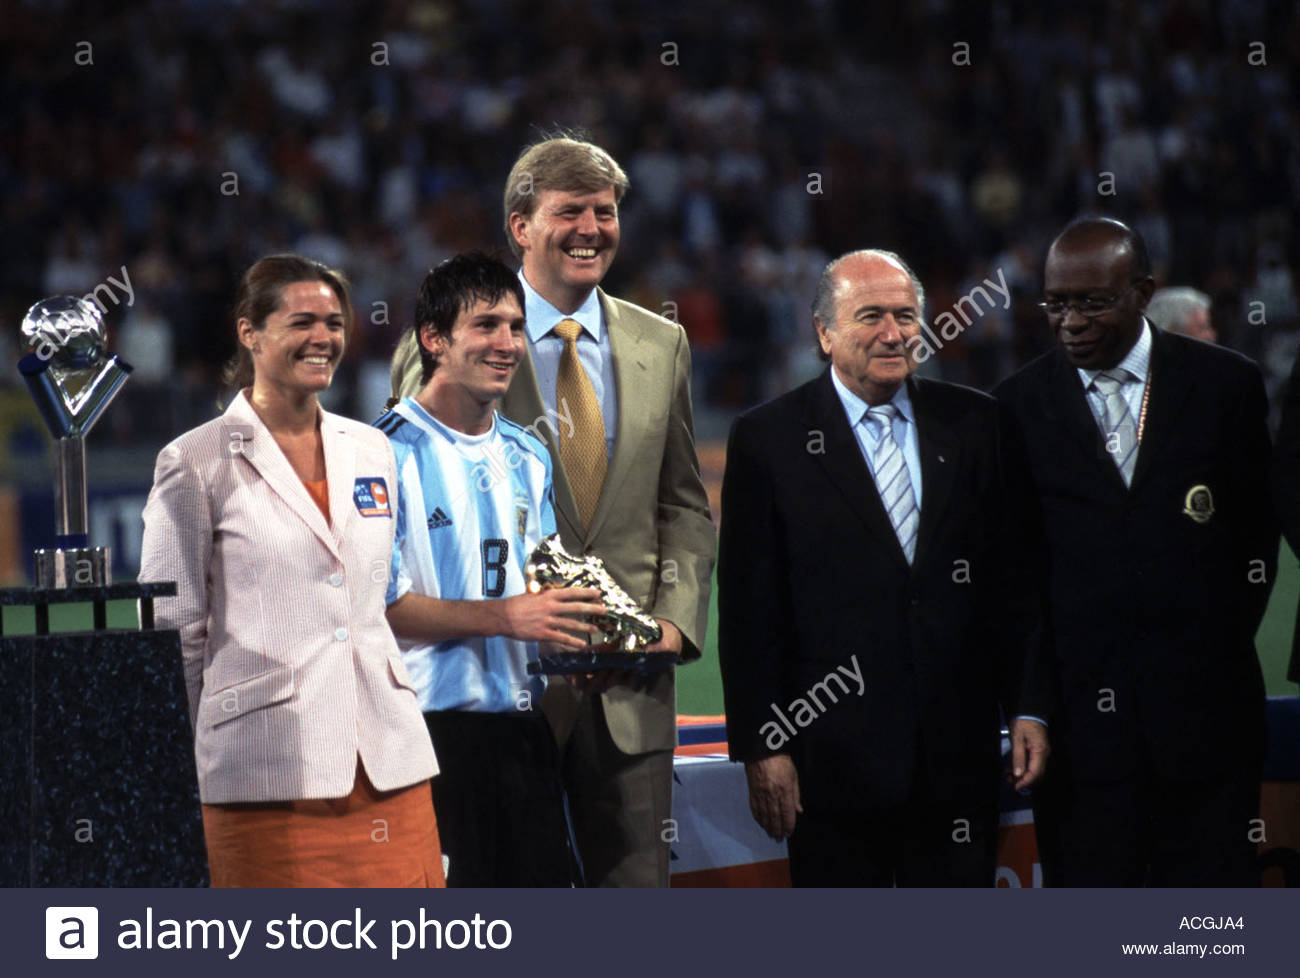 Youth World Championships final Nigeria vs Argentina. Lionel Messi receives golden boot from Prince Willem Alexander - Stock Image